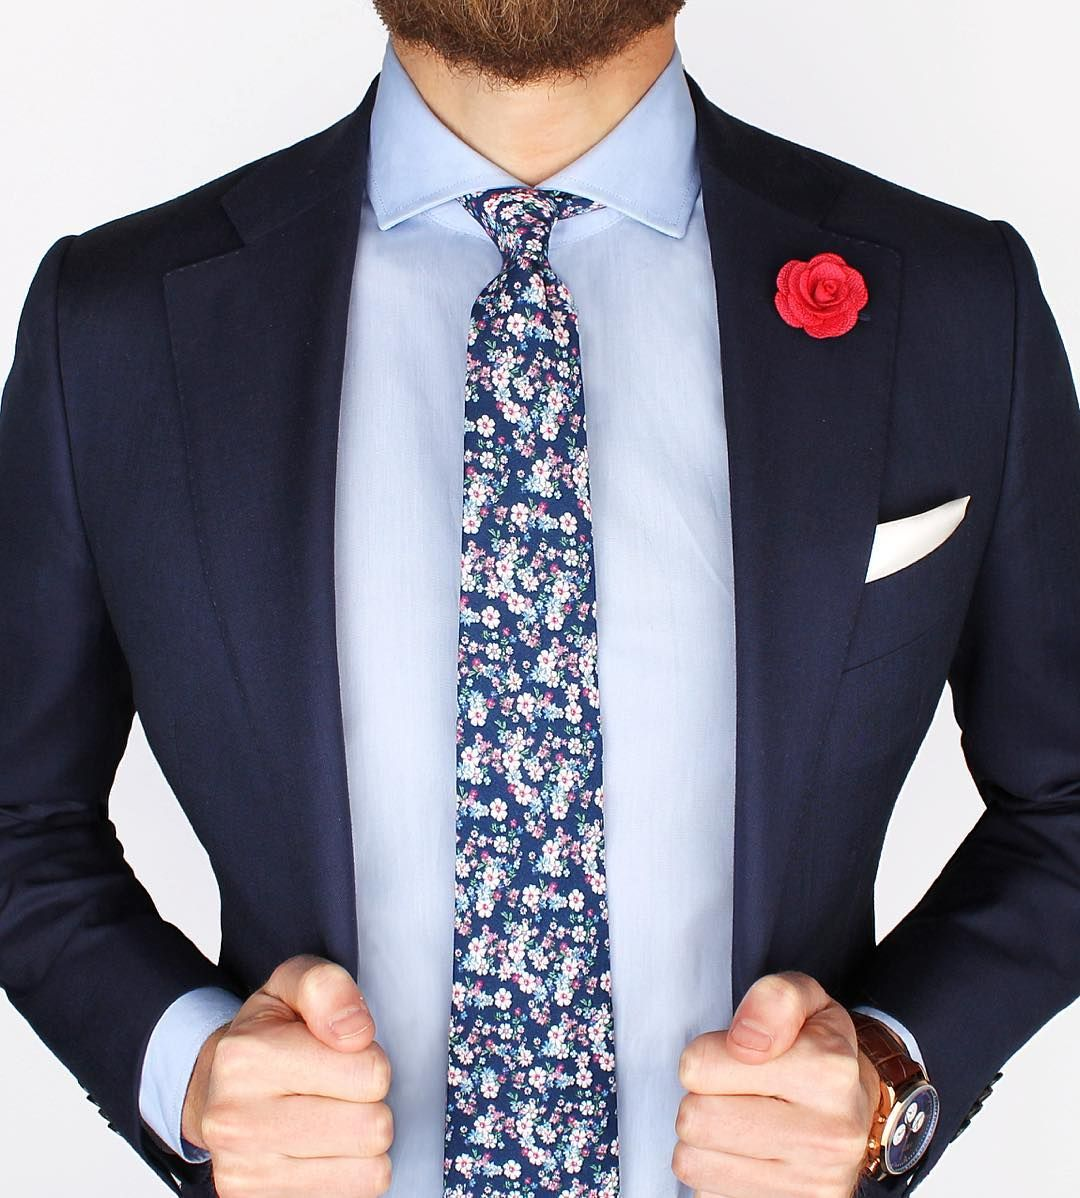 The new Admiral floral tie ff7b2cb811f